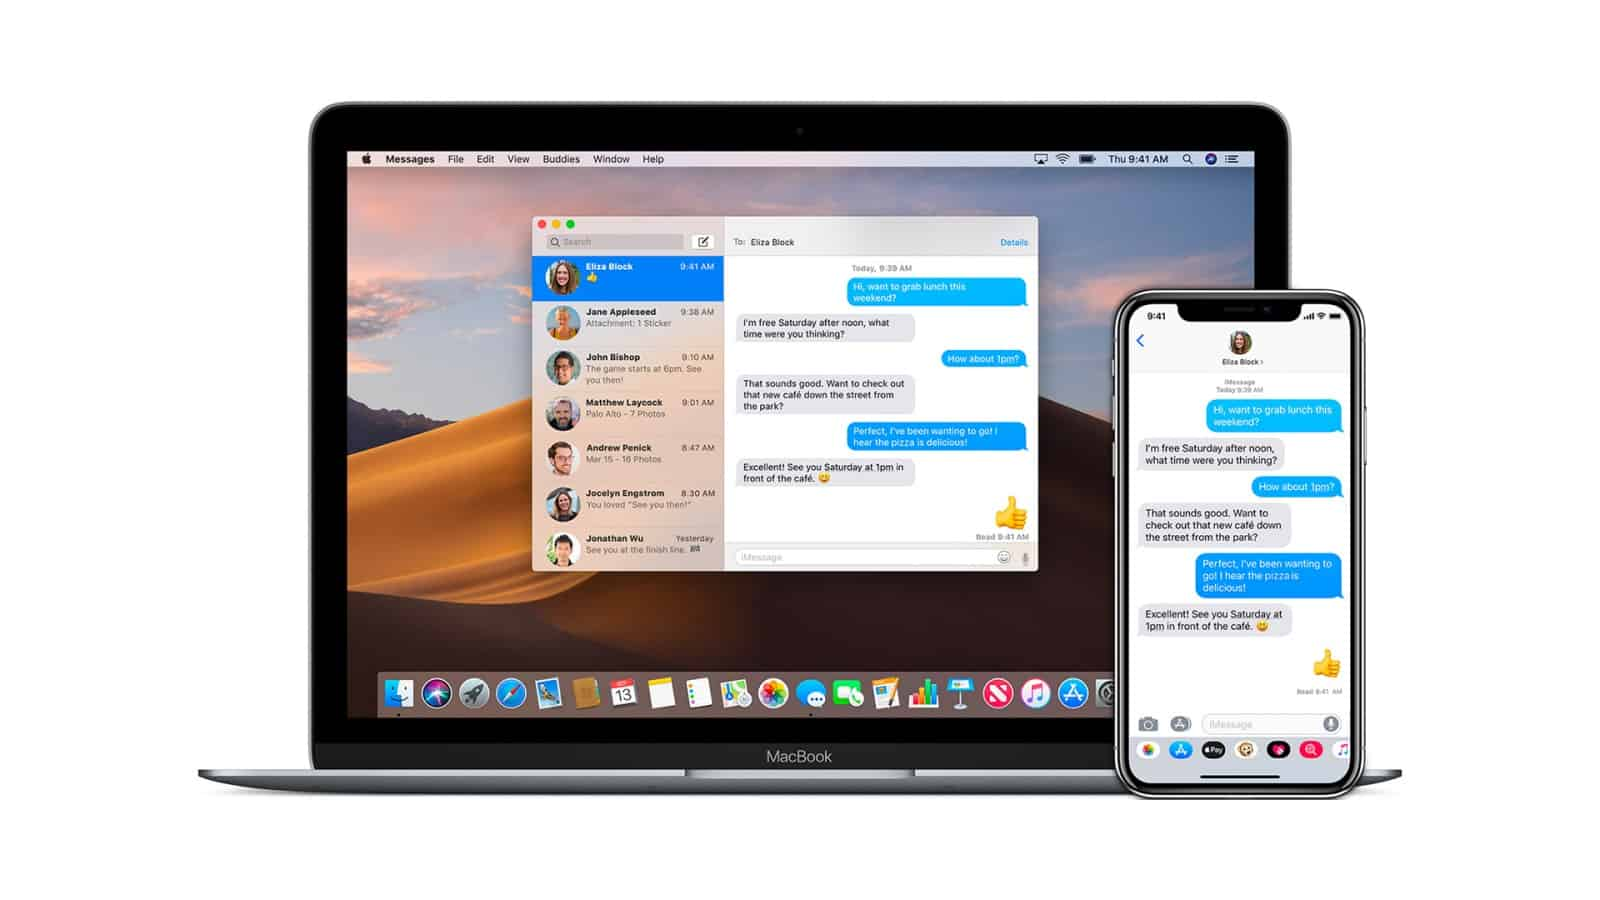 iMessage di iPhone dan Macbook